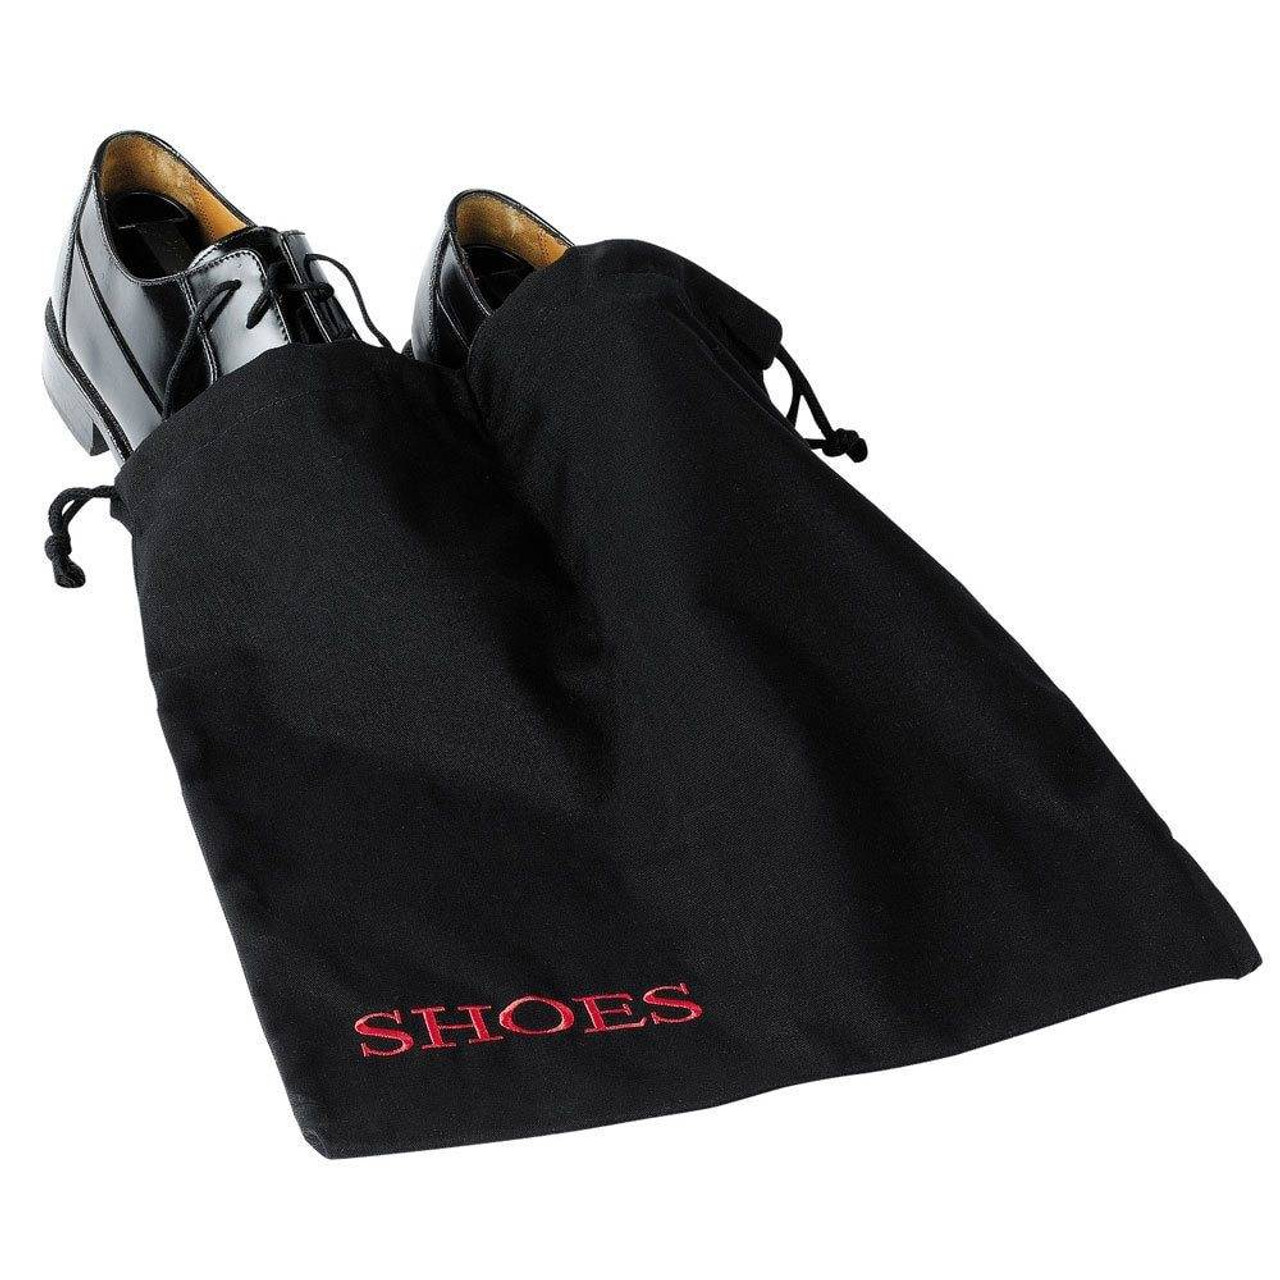 HOSPITALITY 1 SOURCE AMENITY BAGS or HOSPITALITY 1 SOURCE or SHOE BAG or BLACK/RED EMBROIDERY